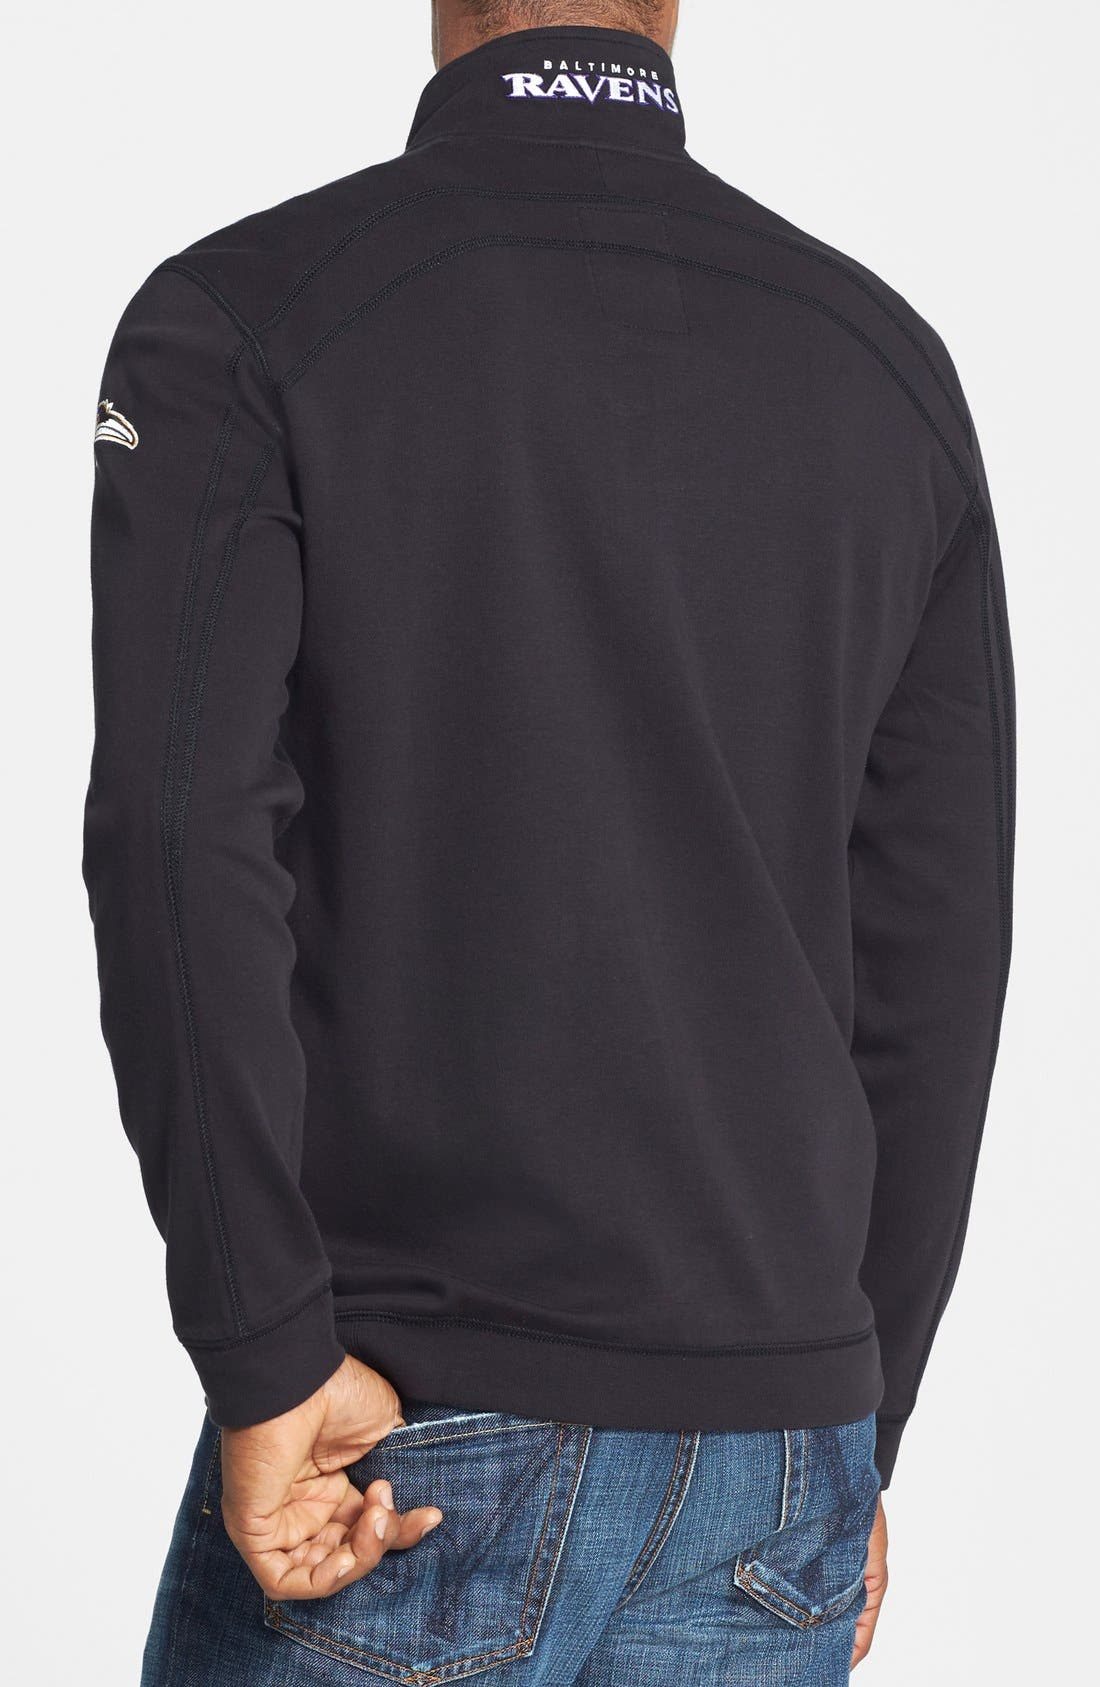 'Chicago Bears - NFL' Quarter Zip Pima Cotton Sweatshirt,                             Alternate thumbnail 3, color,                             001